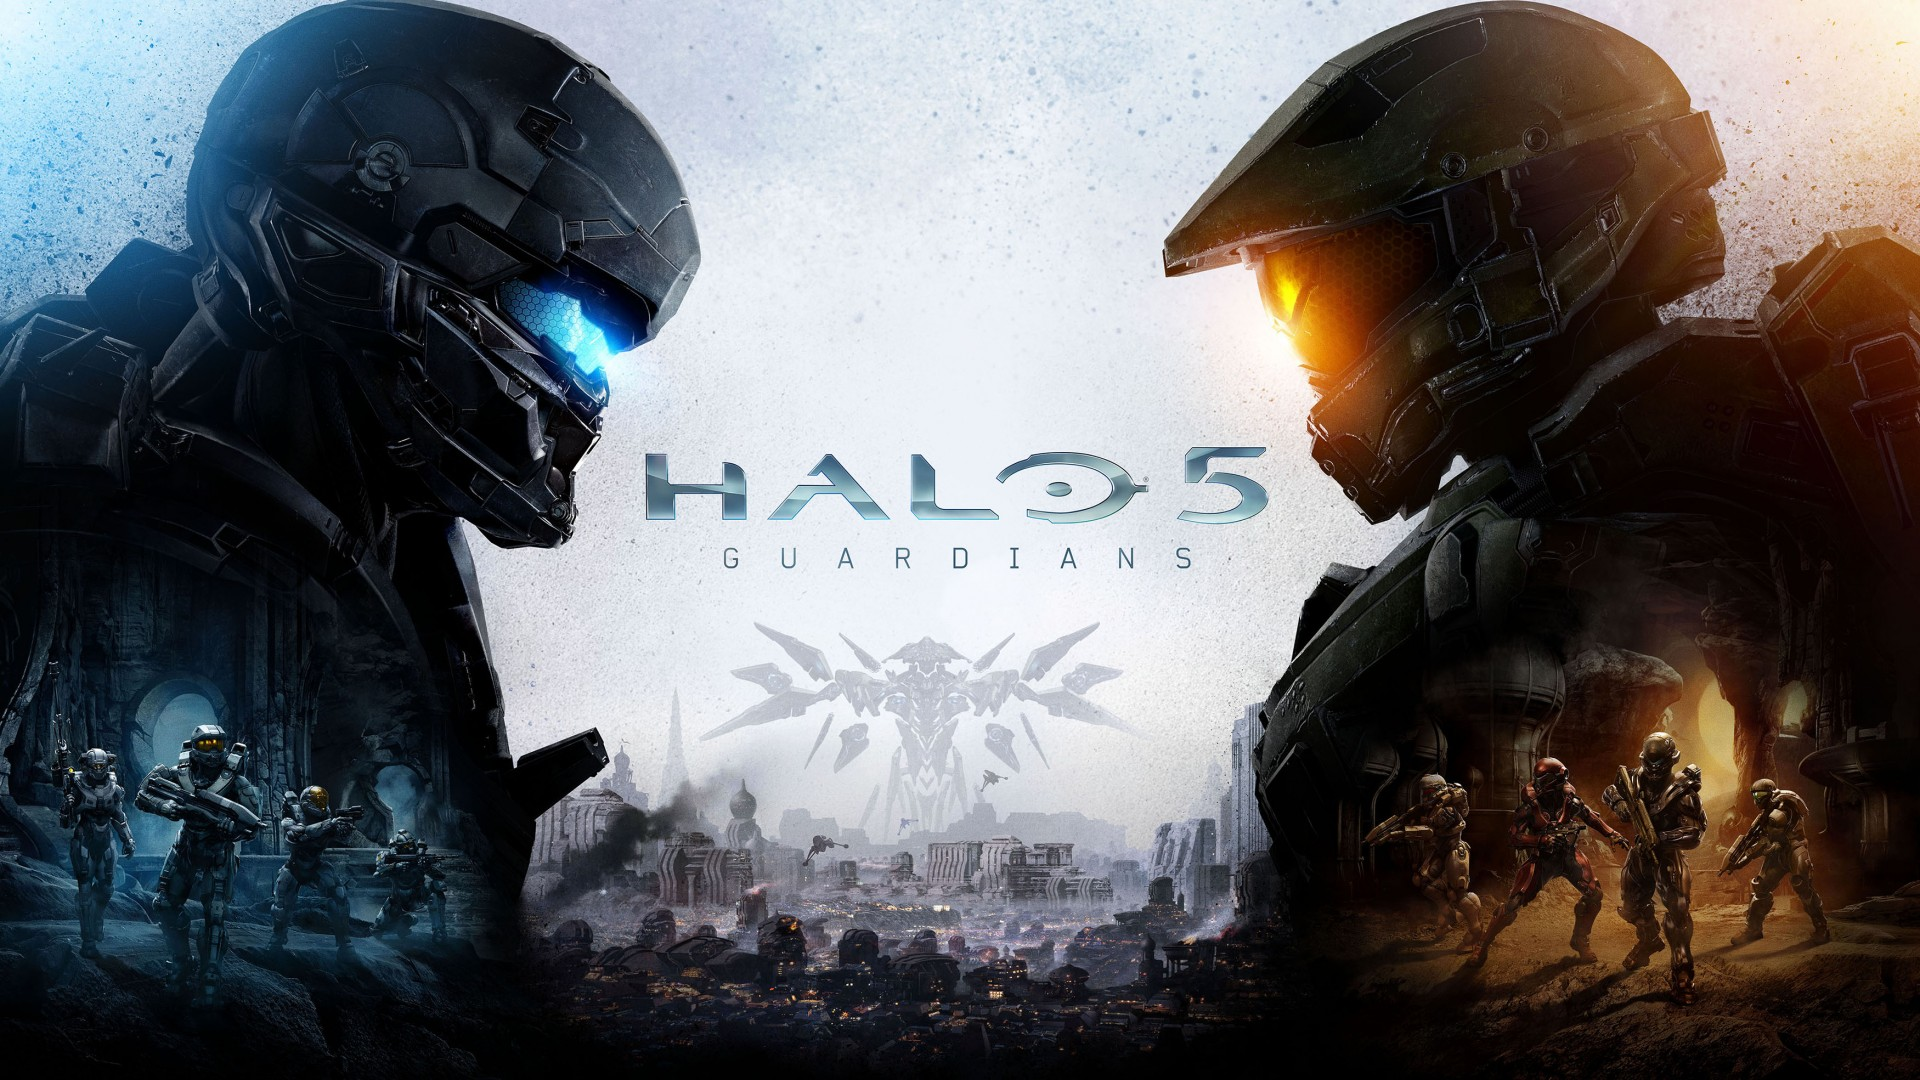 Win-a-copy-of-Halo-Guardians-from-The-Koalition-Leaptrade-wallpaper-wp38012088